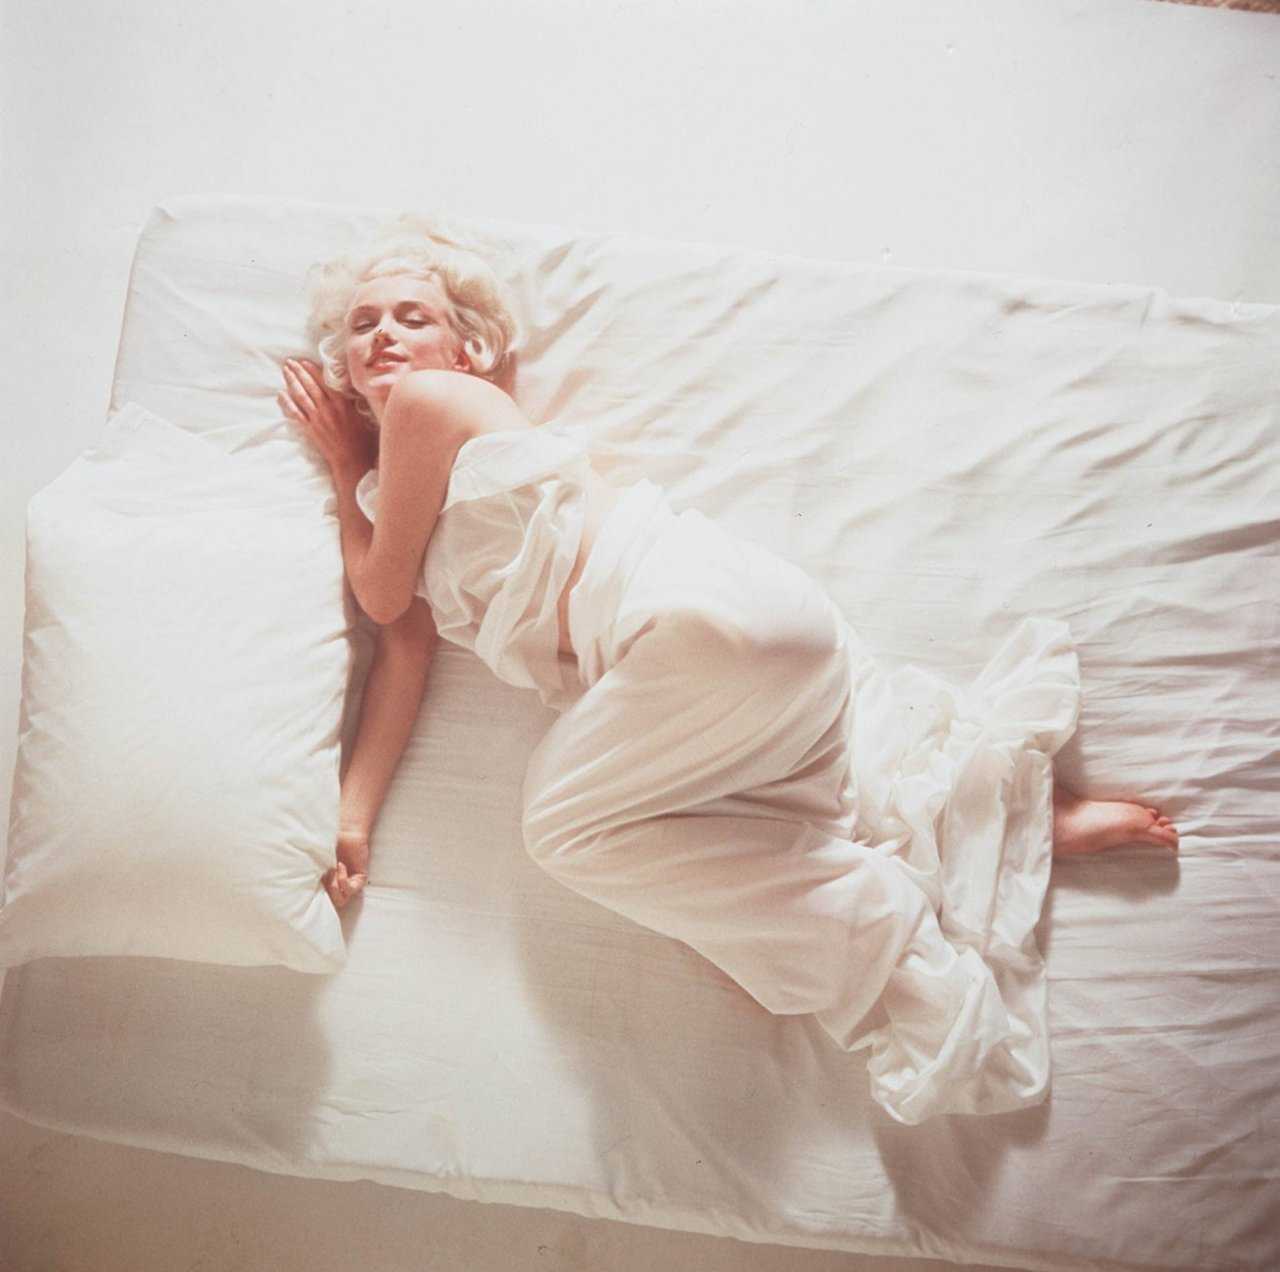 Marilyn Monroe - Look Magazine by Douglas Kirkland, 1961